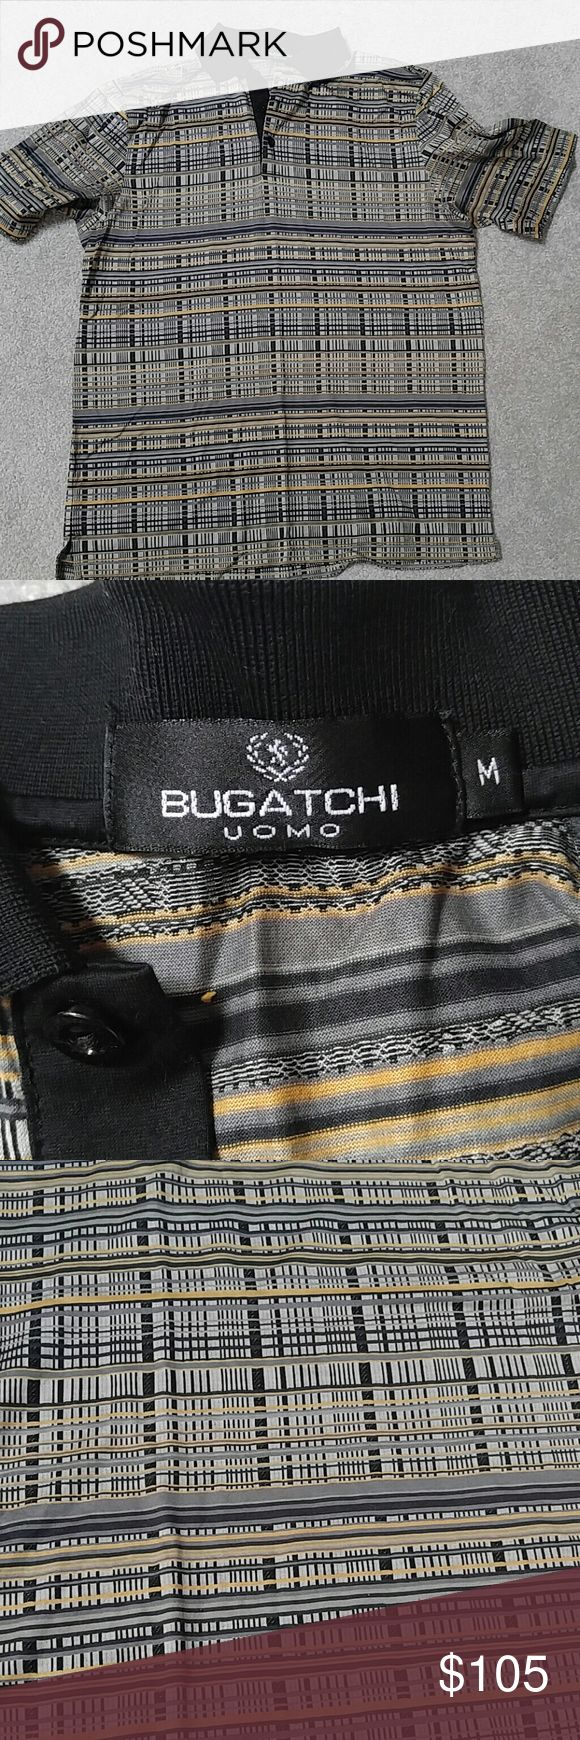 Mens Bugatchi polo shirt Very elegant men's BUGATCHI polo shirt Used once Size M but runs a bit larger In Mint condition 100% authentic 100% mercerized Egyptian cotton Pet free and smoke free home Bugatchi Shirts Polos